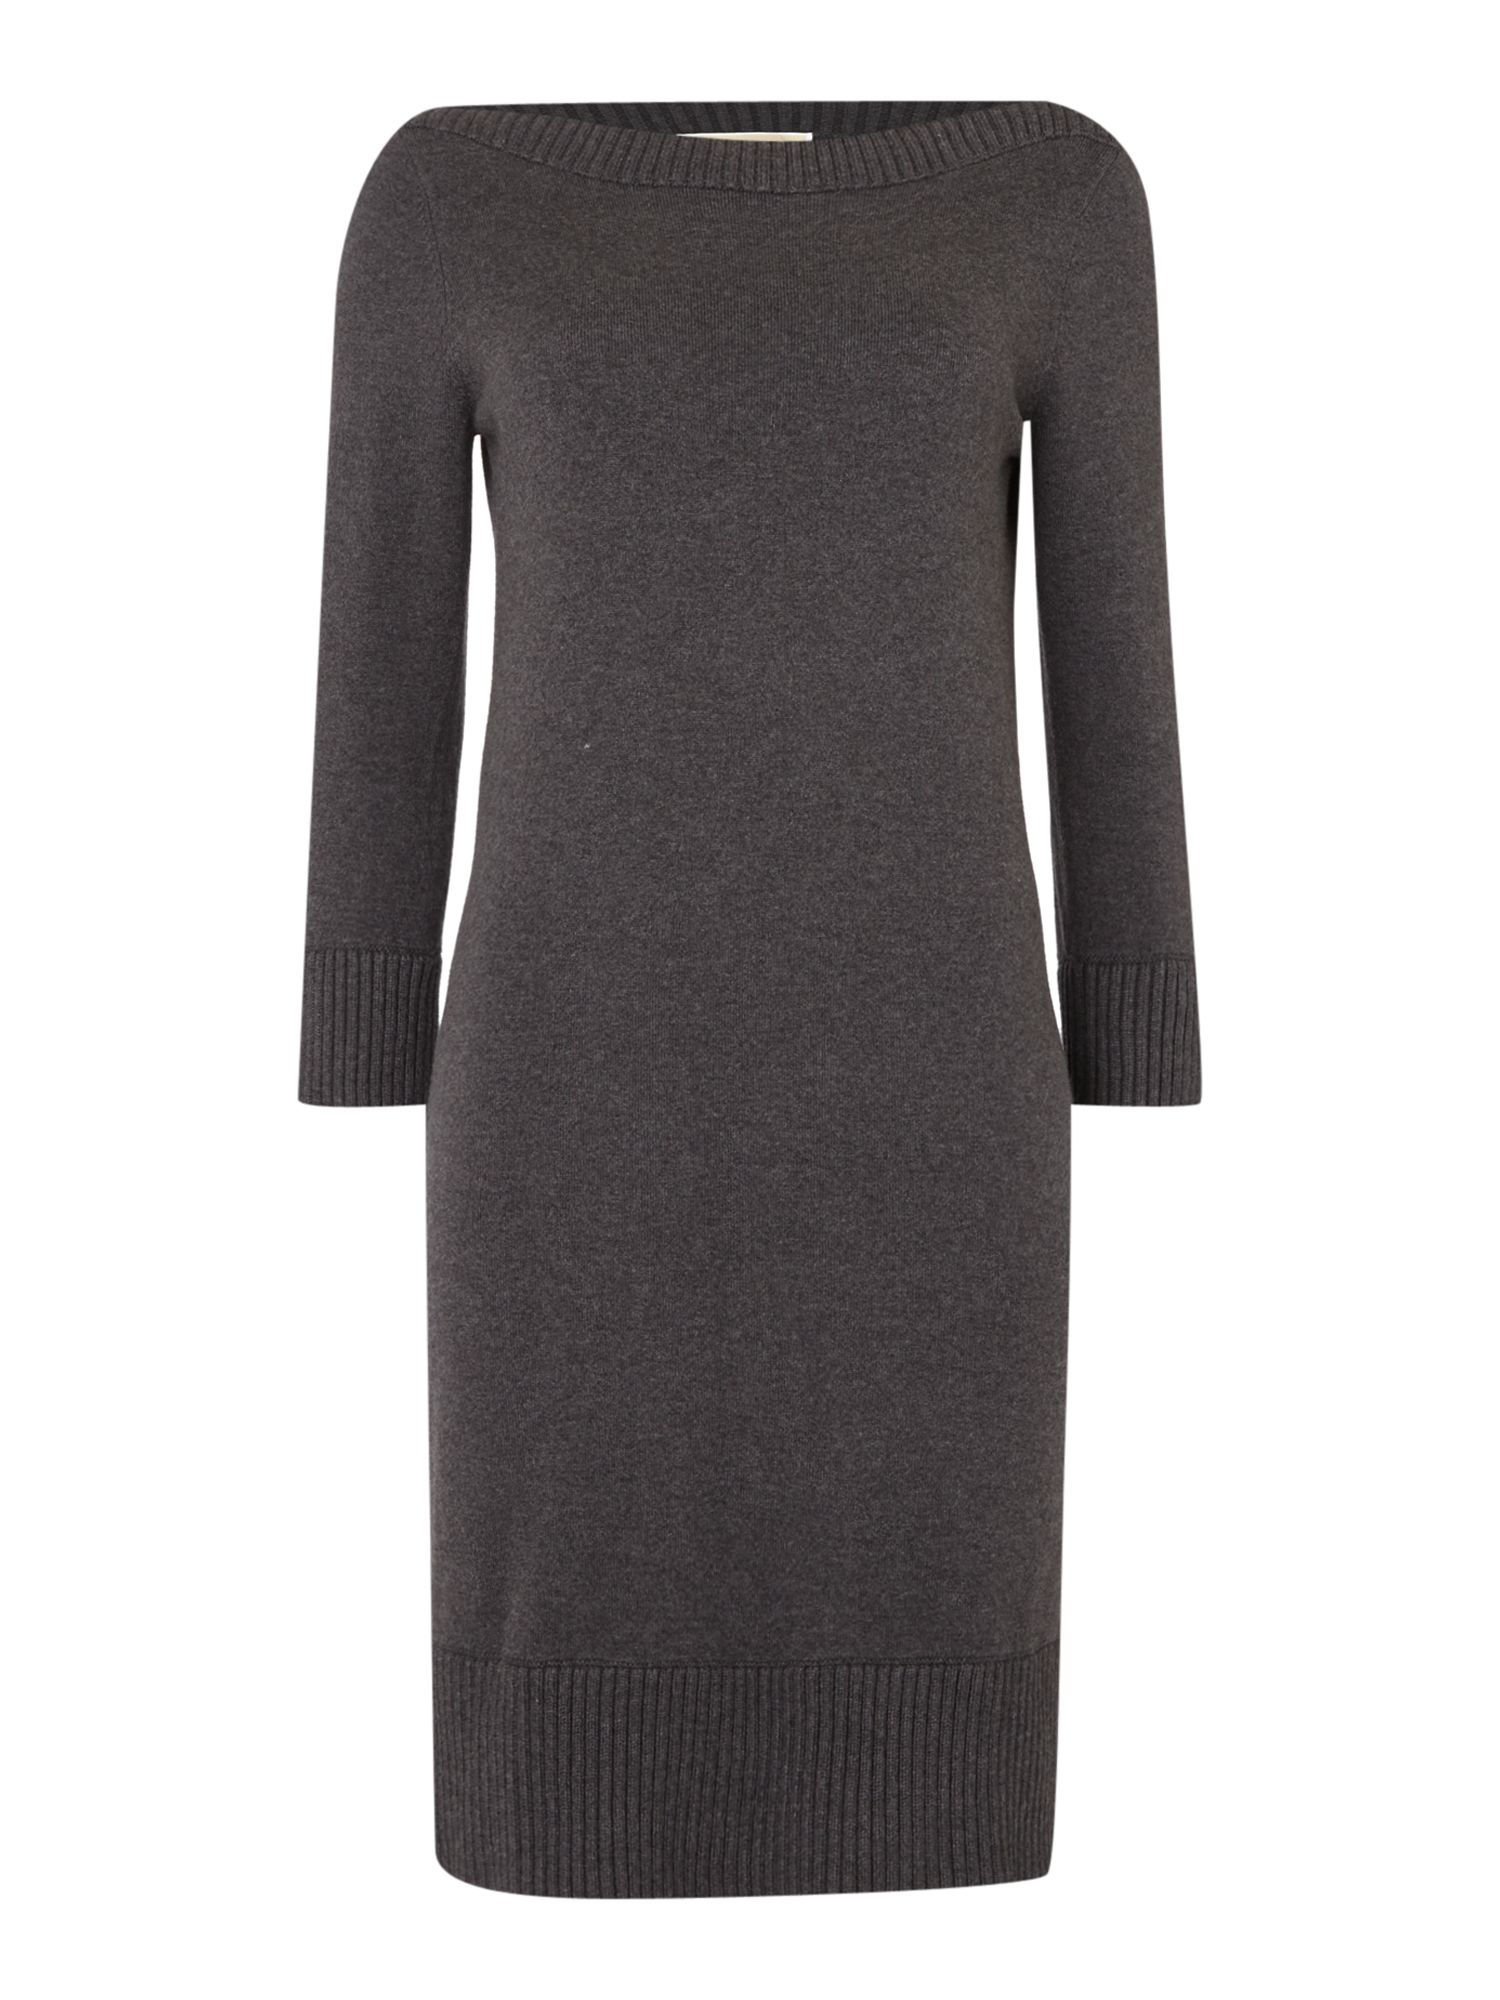 Michael Kors 3/4 sleeve boatneck zip knit dress